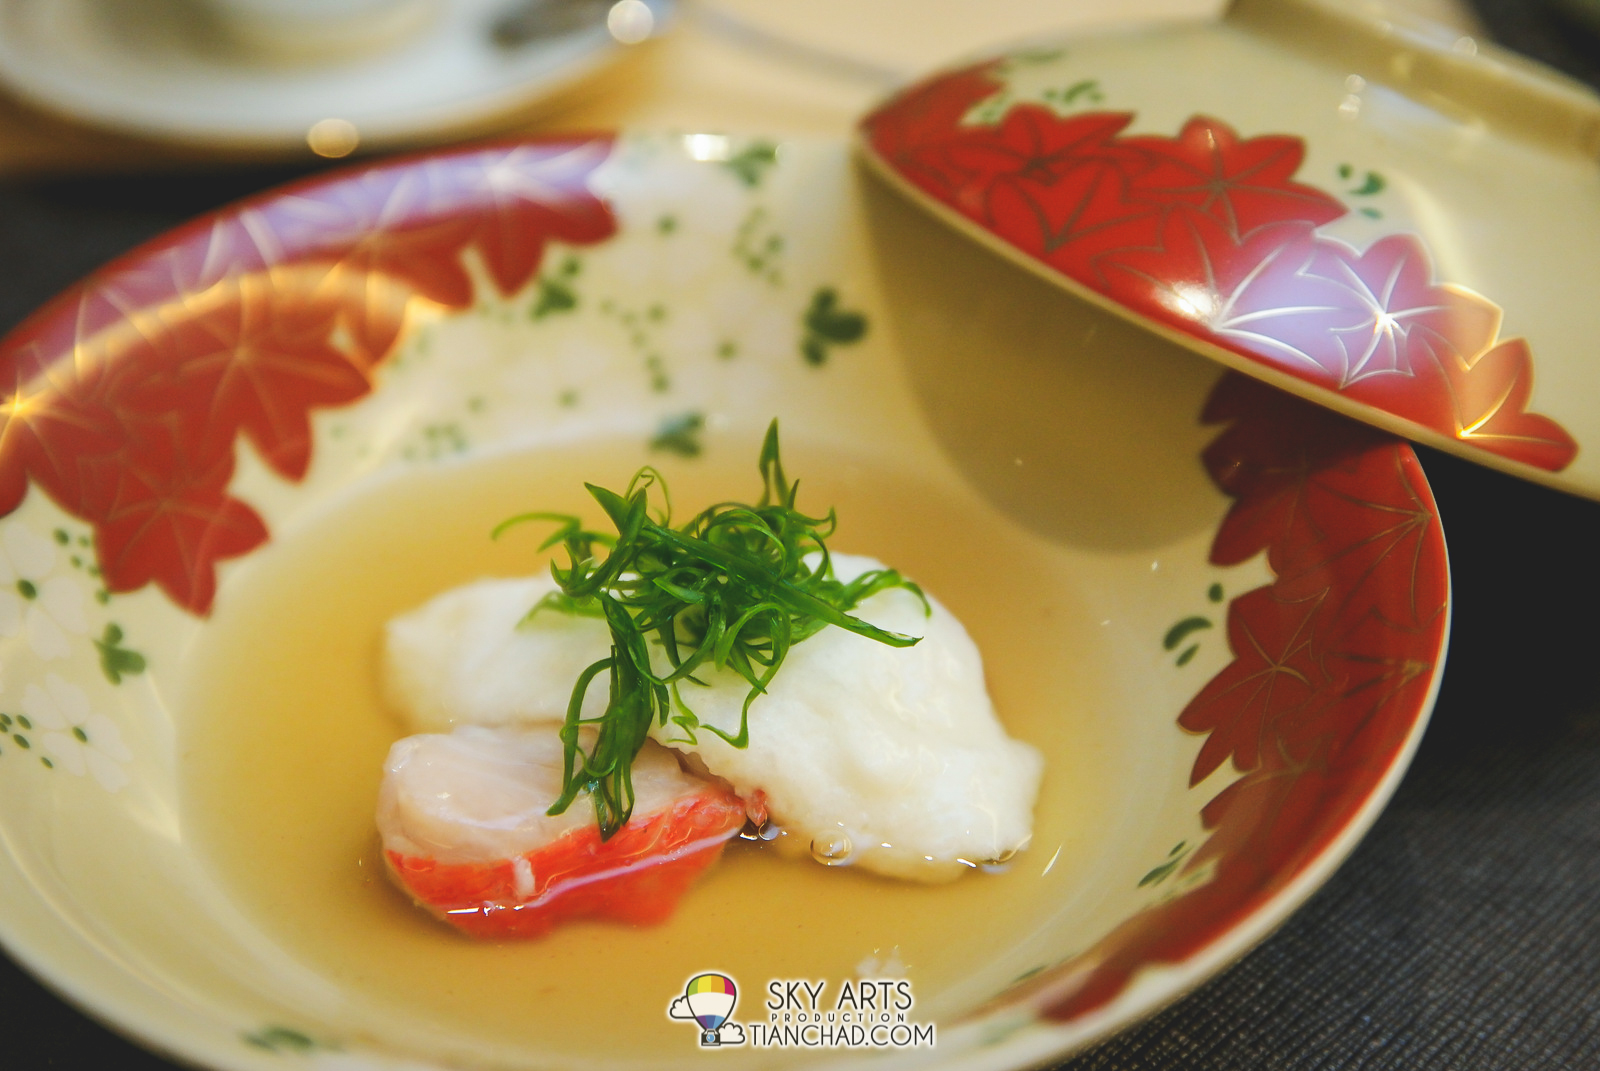 Steamed Alfonsino paired with Japanese Yam and Egg White with a hint of fish stock